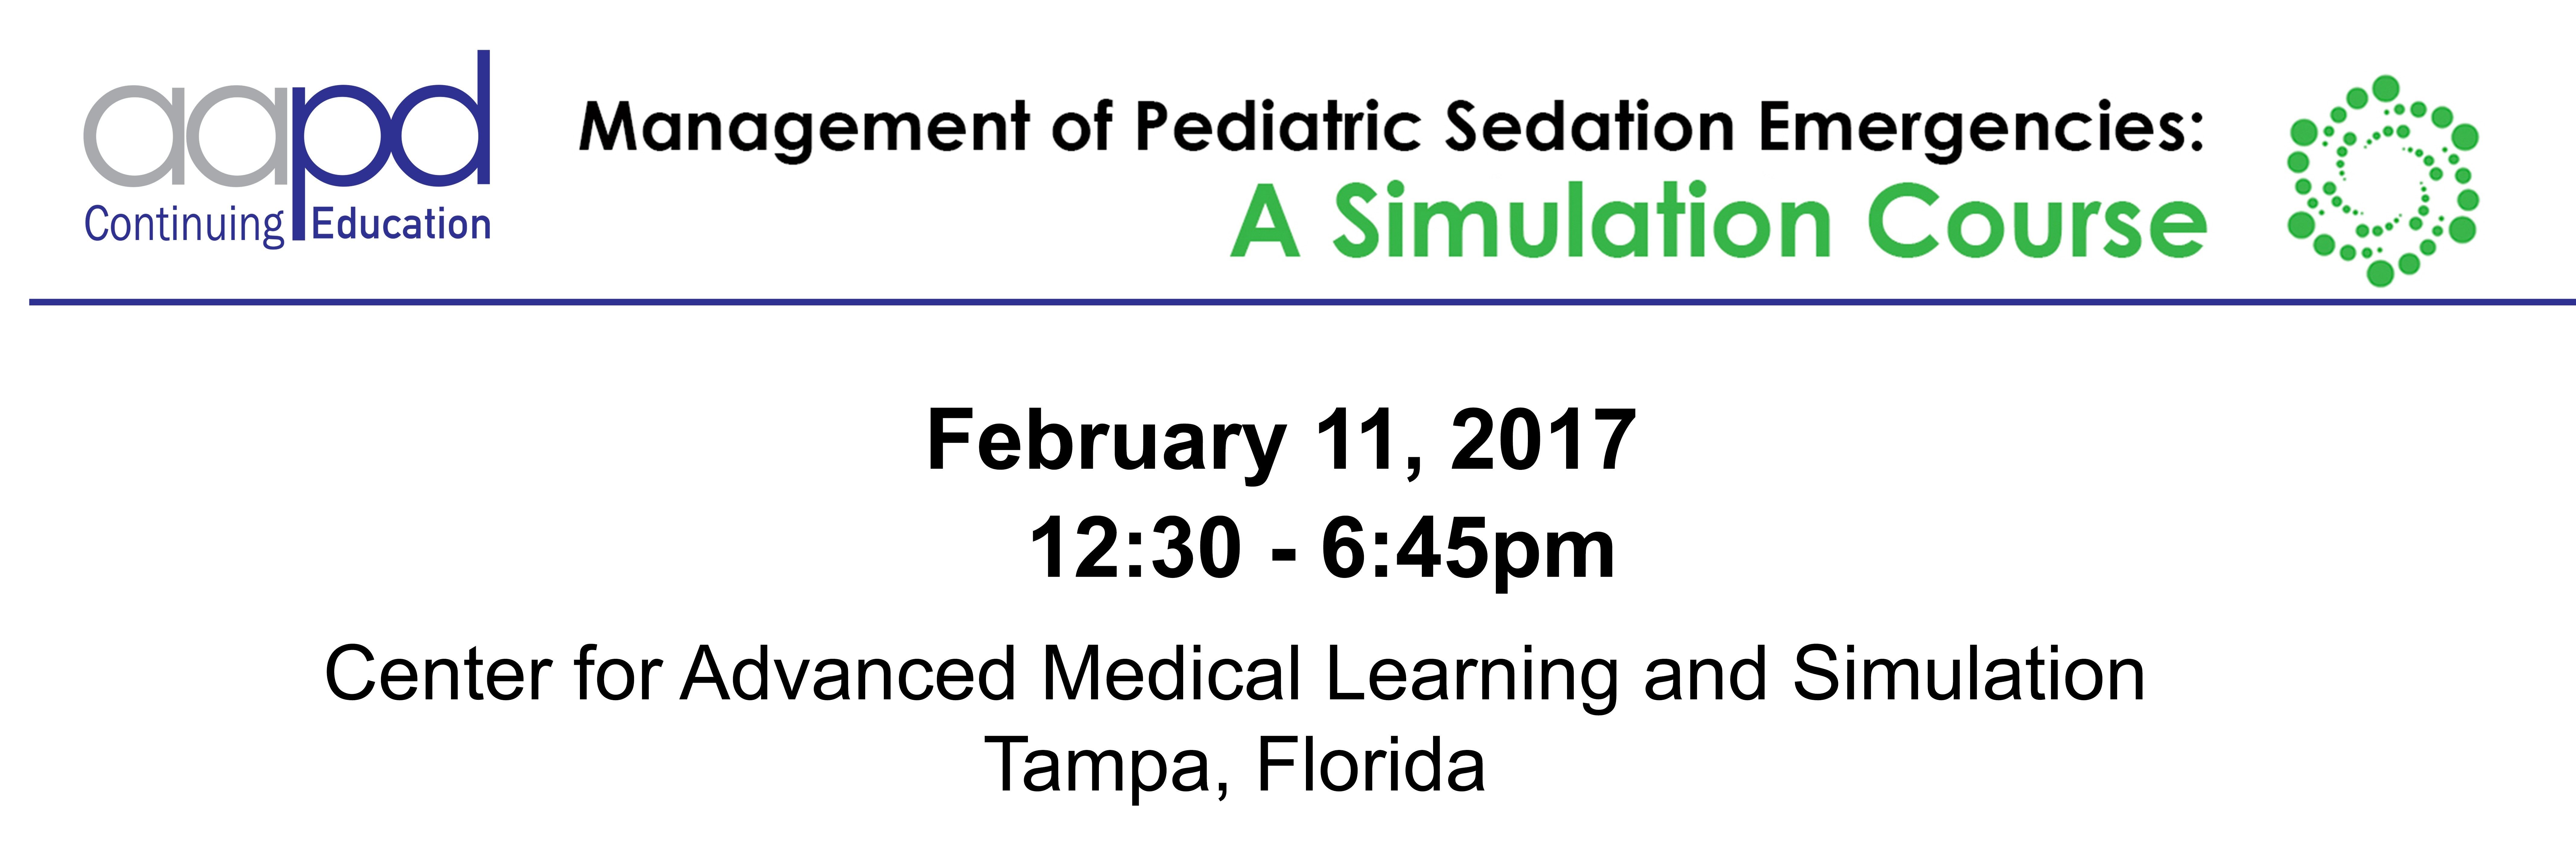 Management of Pediatric Sedation Emergencies: A Simulation Course